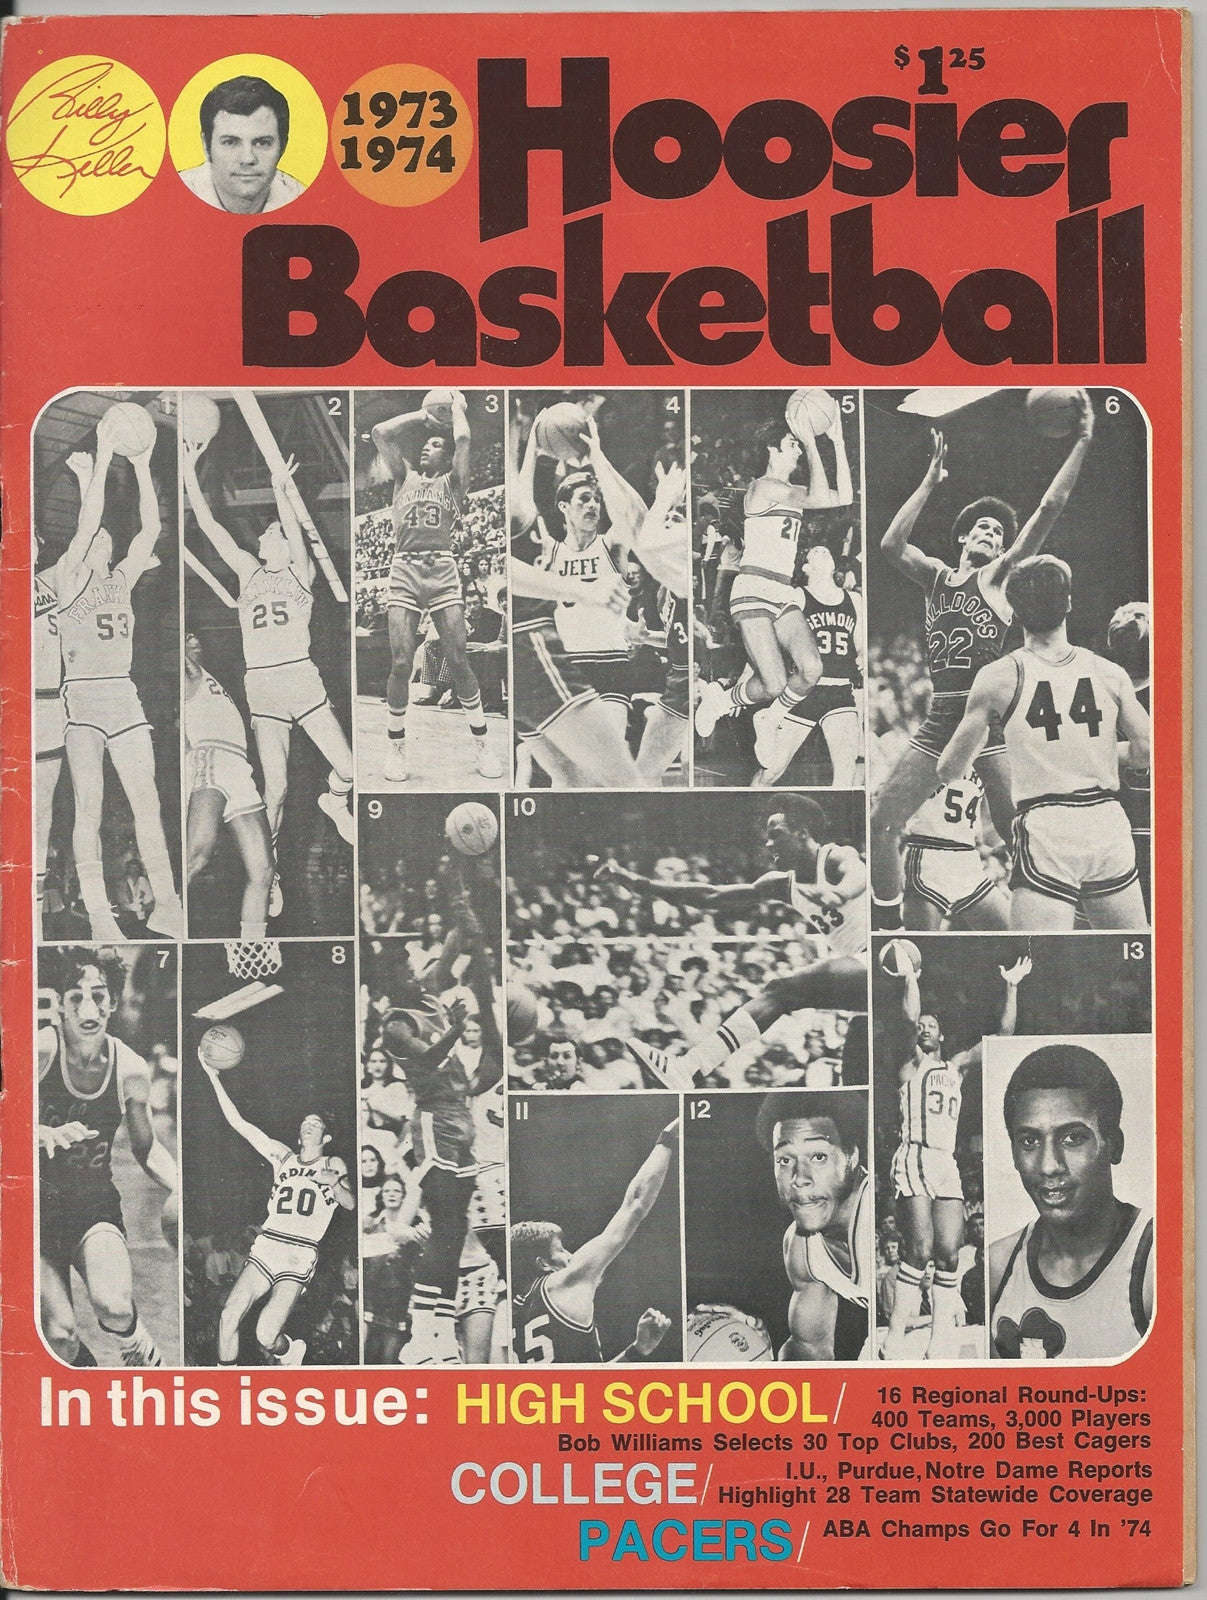 1973-74 Hoosier Basketball Magazine - Vintage Indy Sports